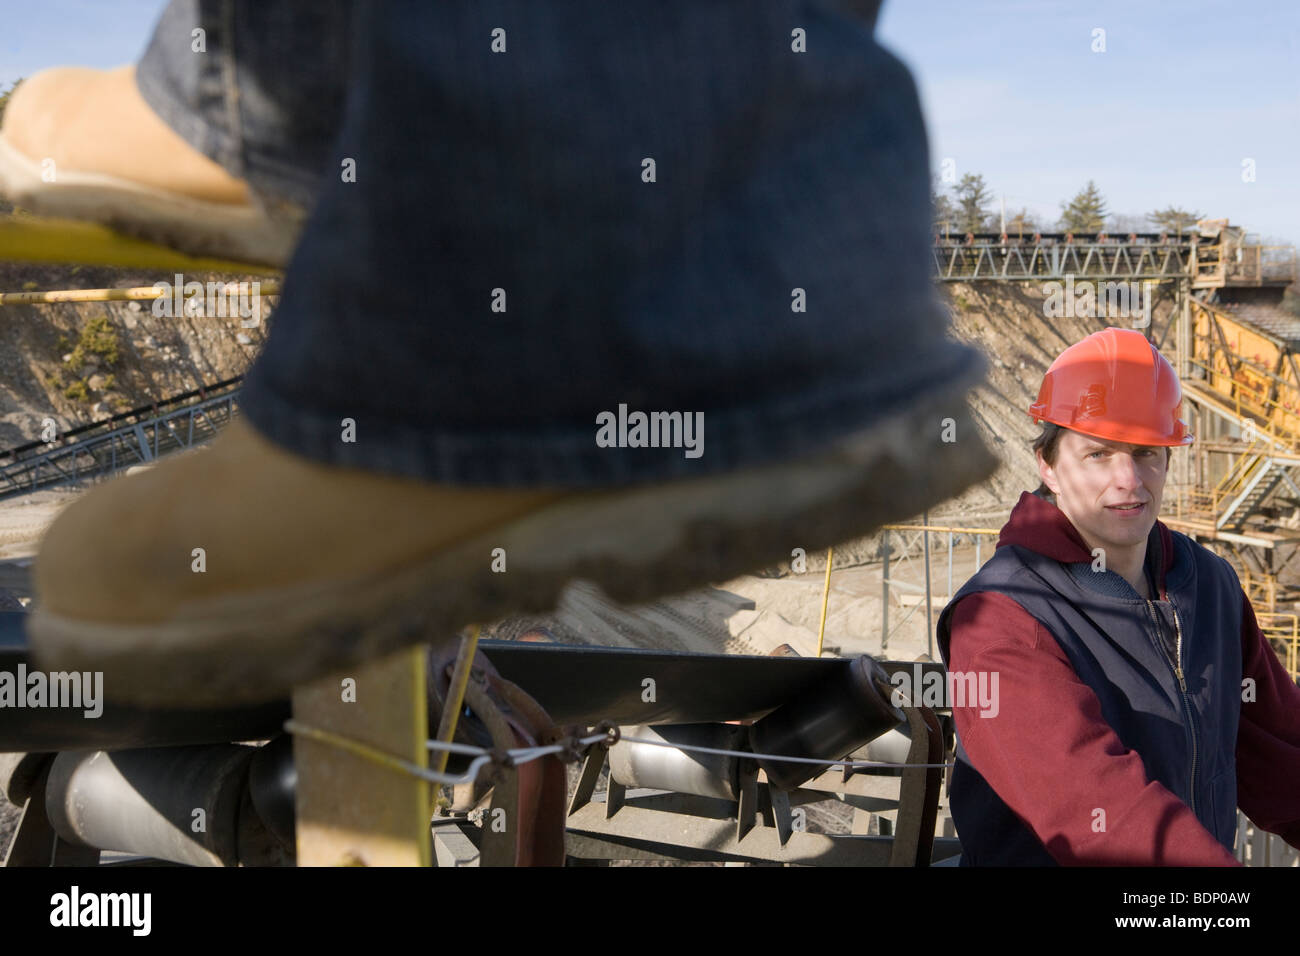 Two engineers on a conveyor belt at a construction site - Stock Image